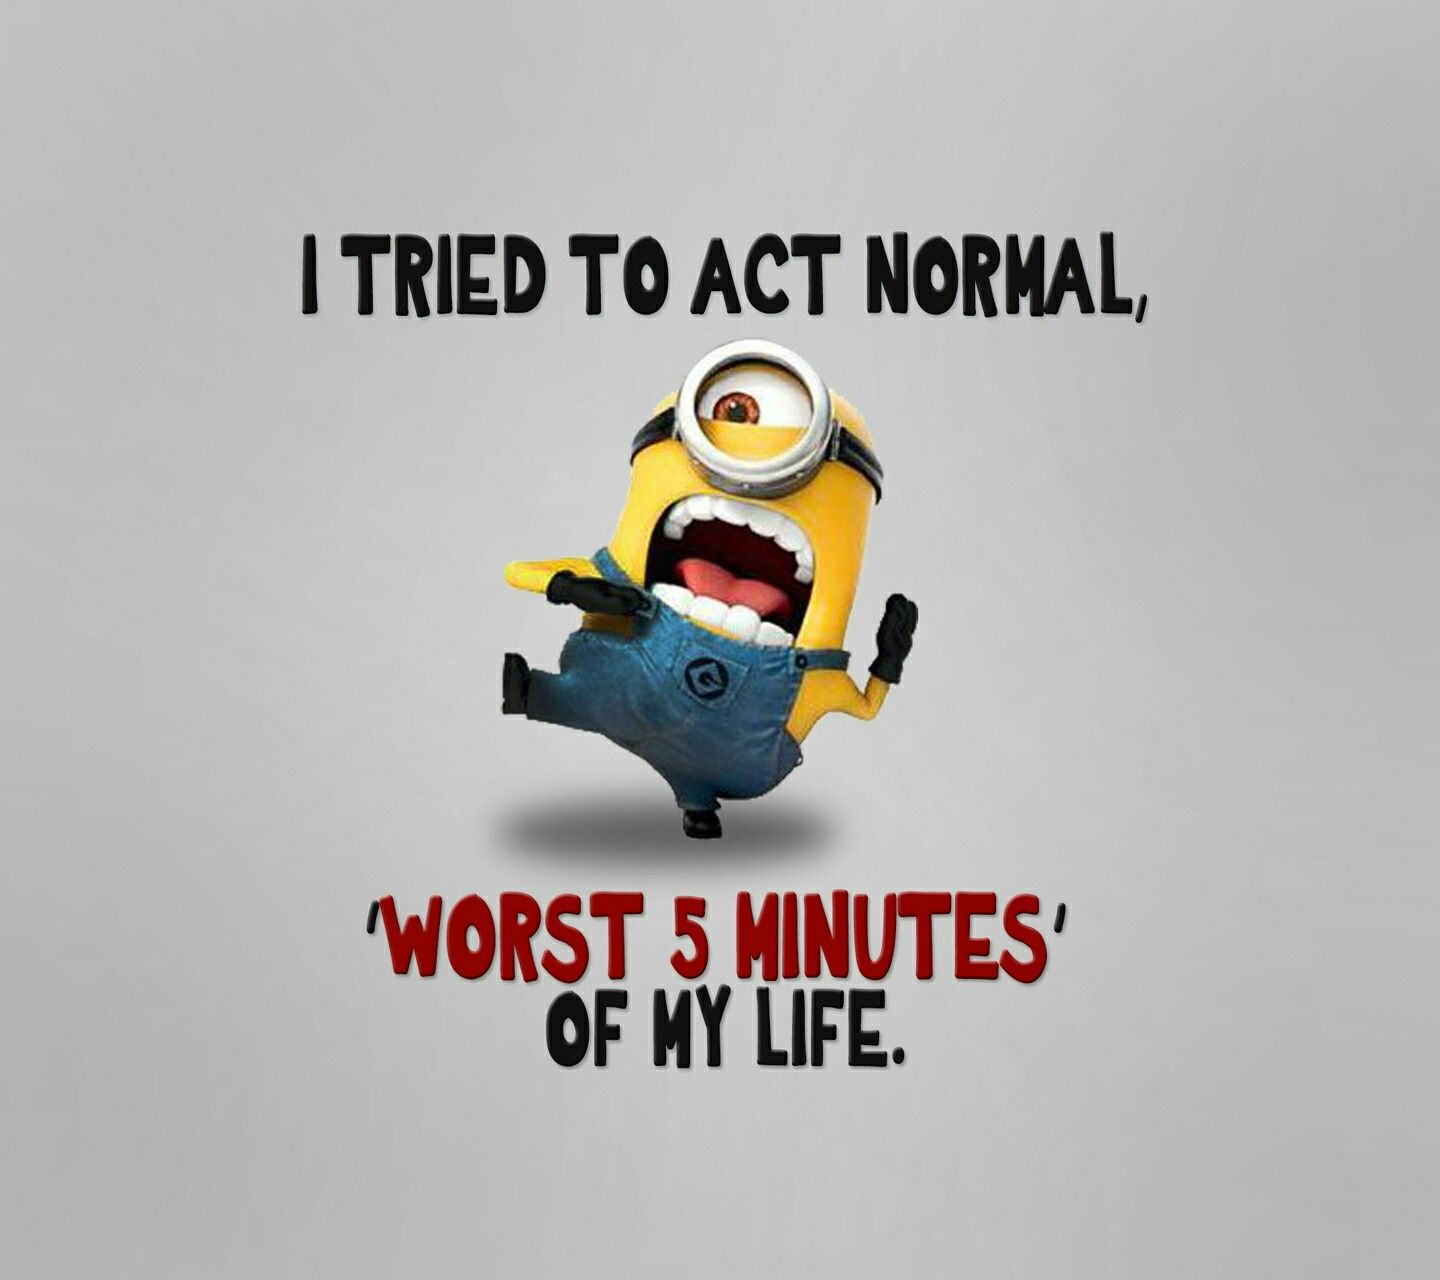 You Can T Help But Love The Minion S Minions Funny Minion Jokes